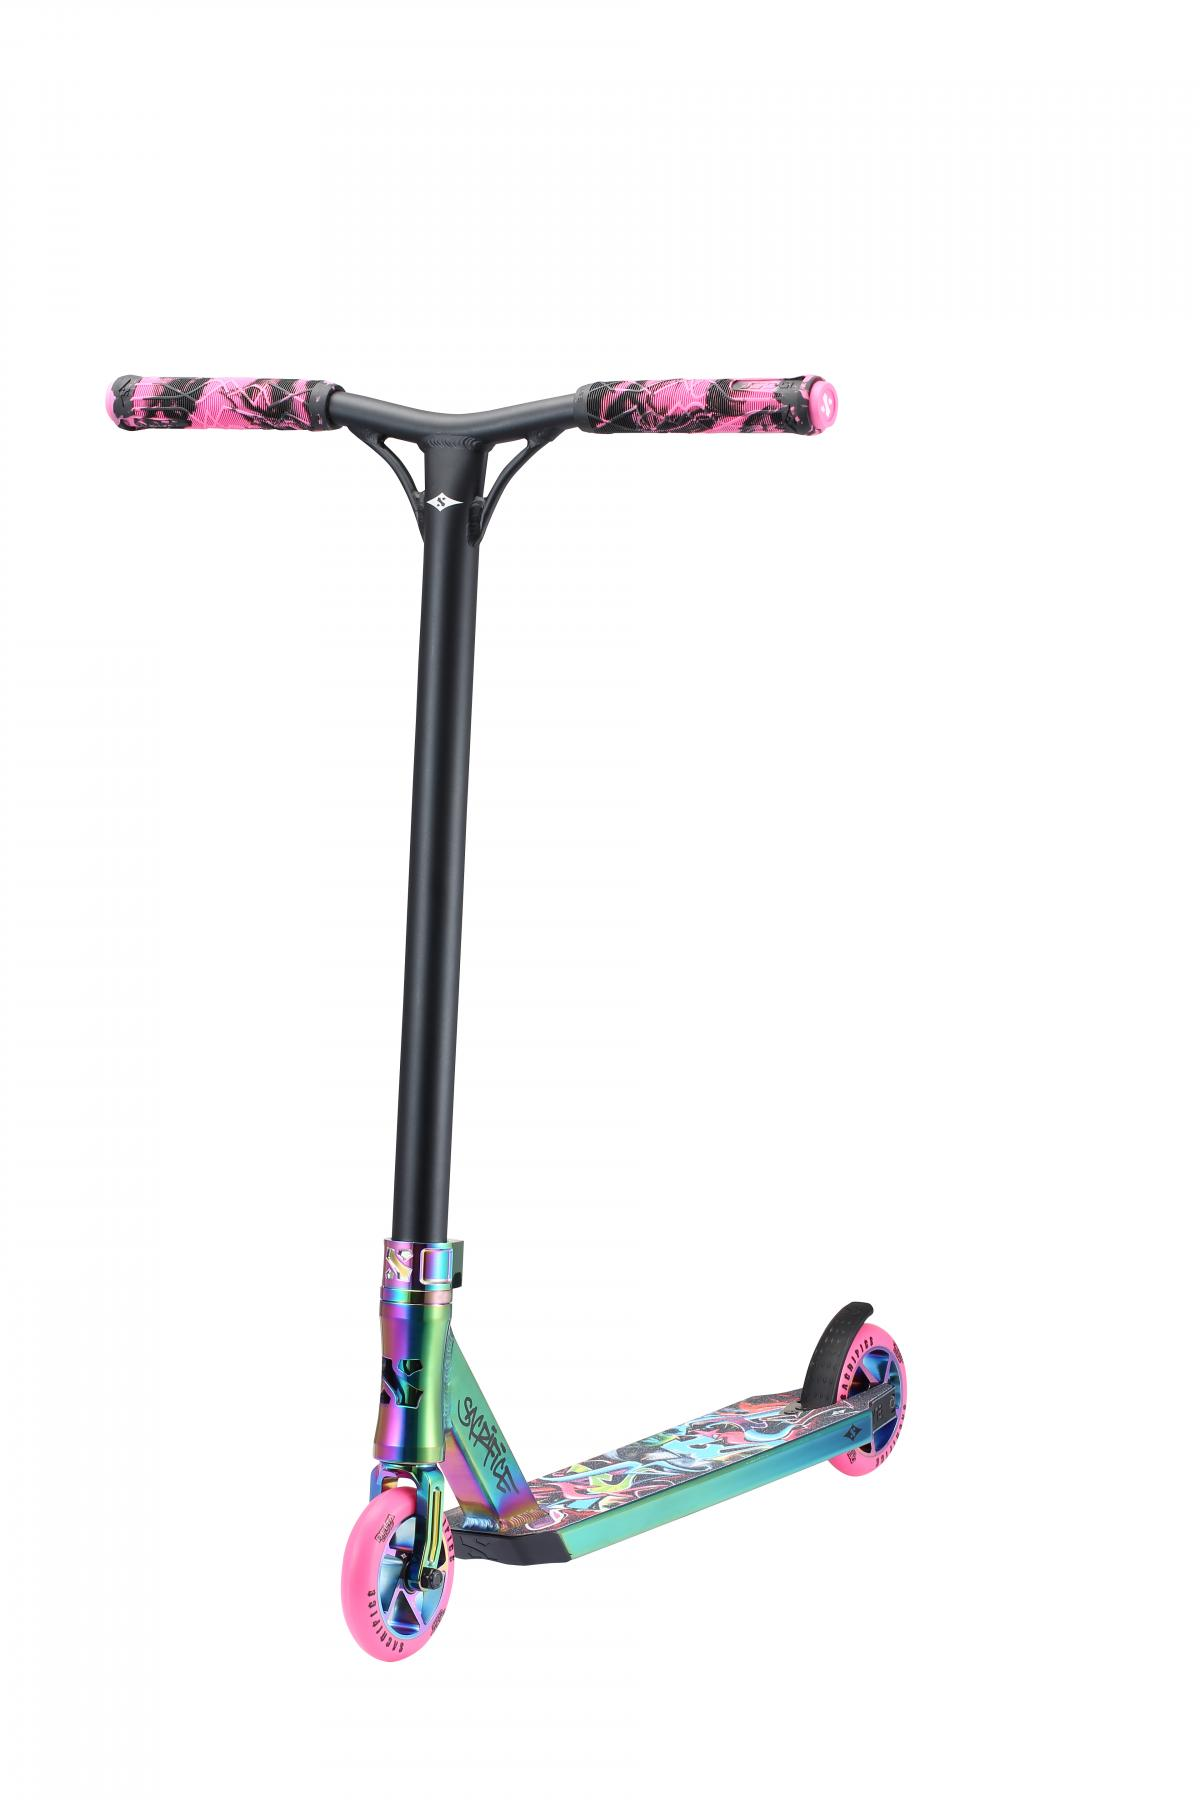 Sacrifice Flyte 100 Neo Pink Graffiti Scooter